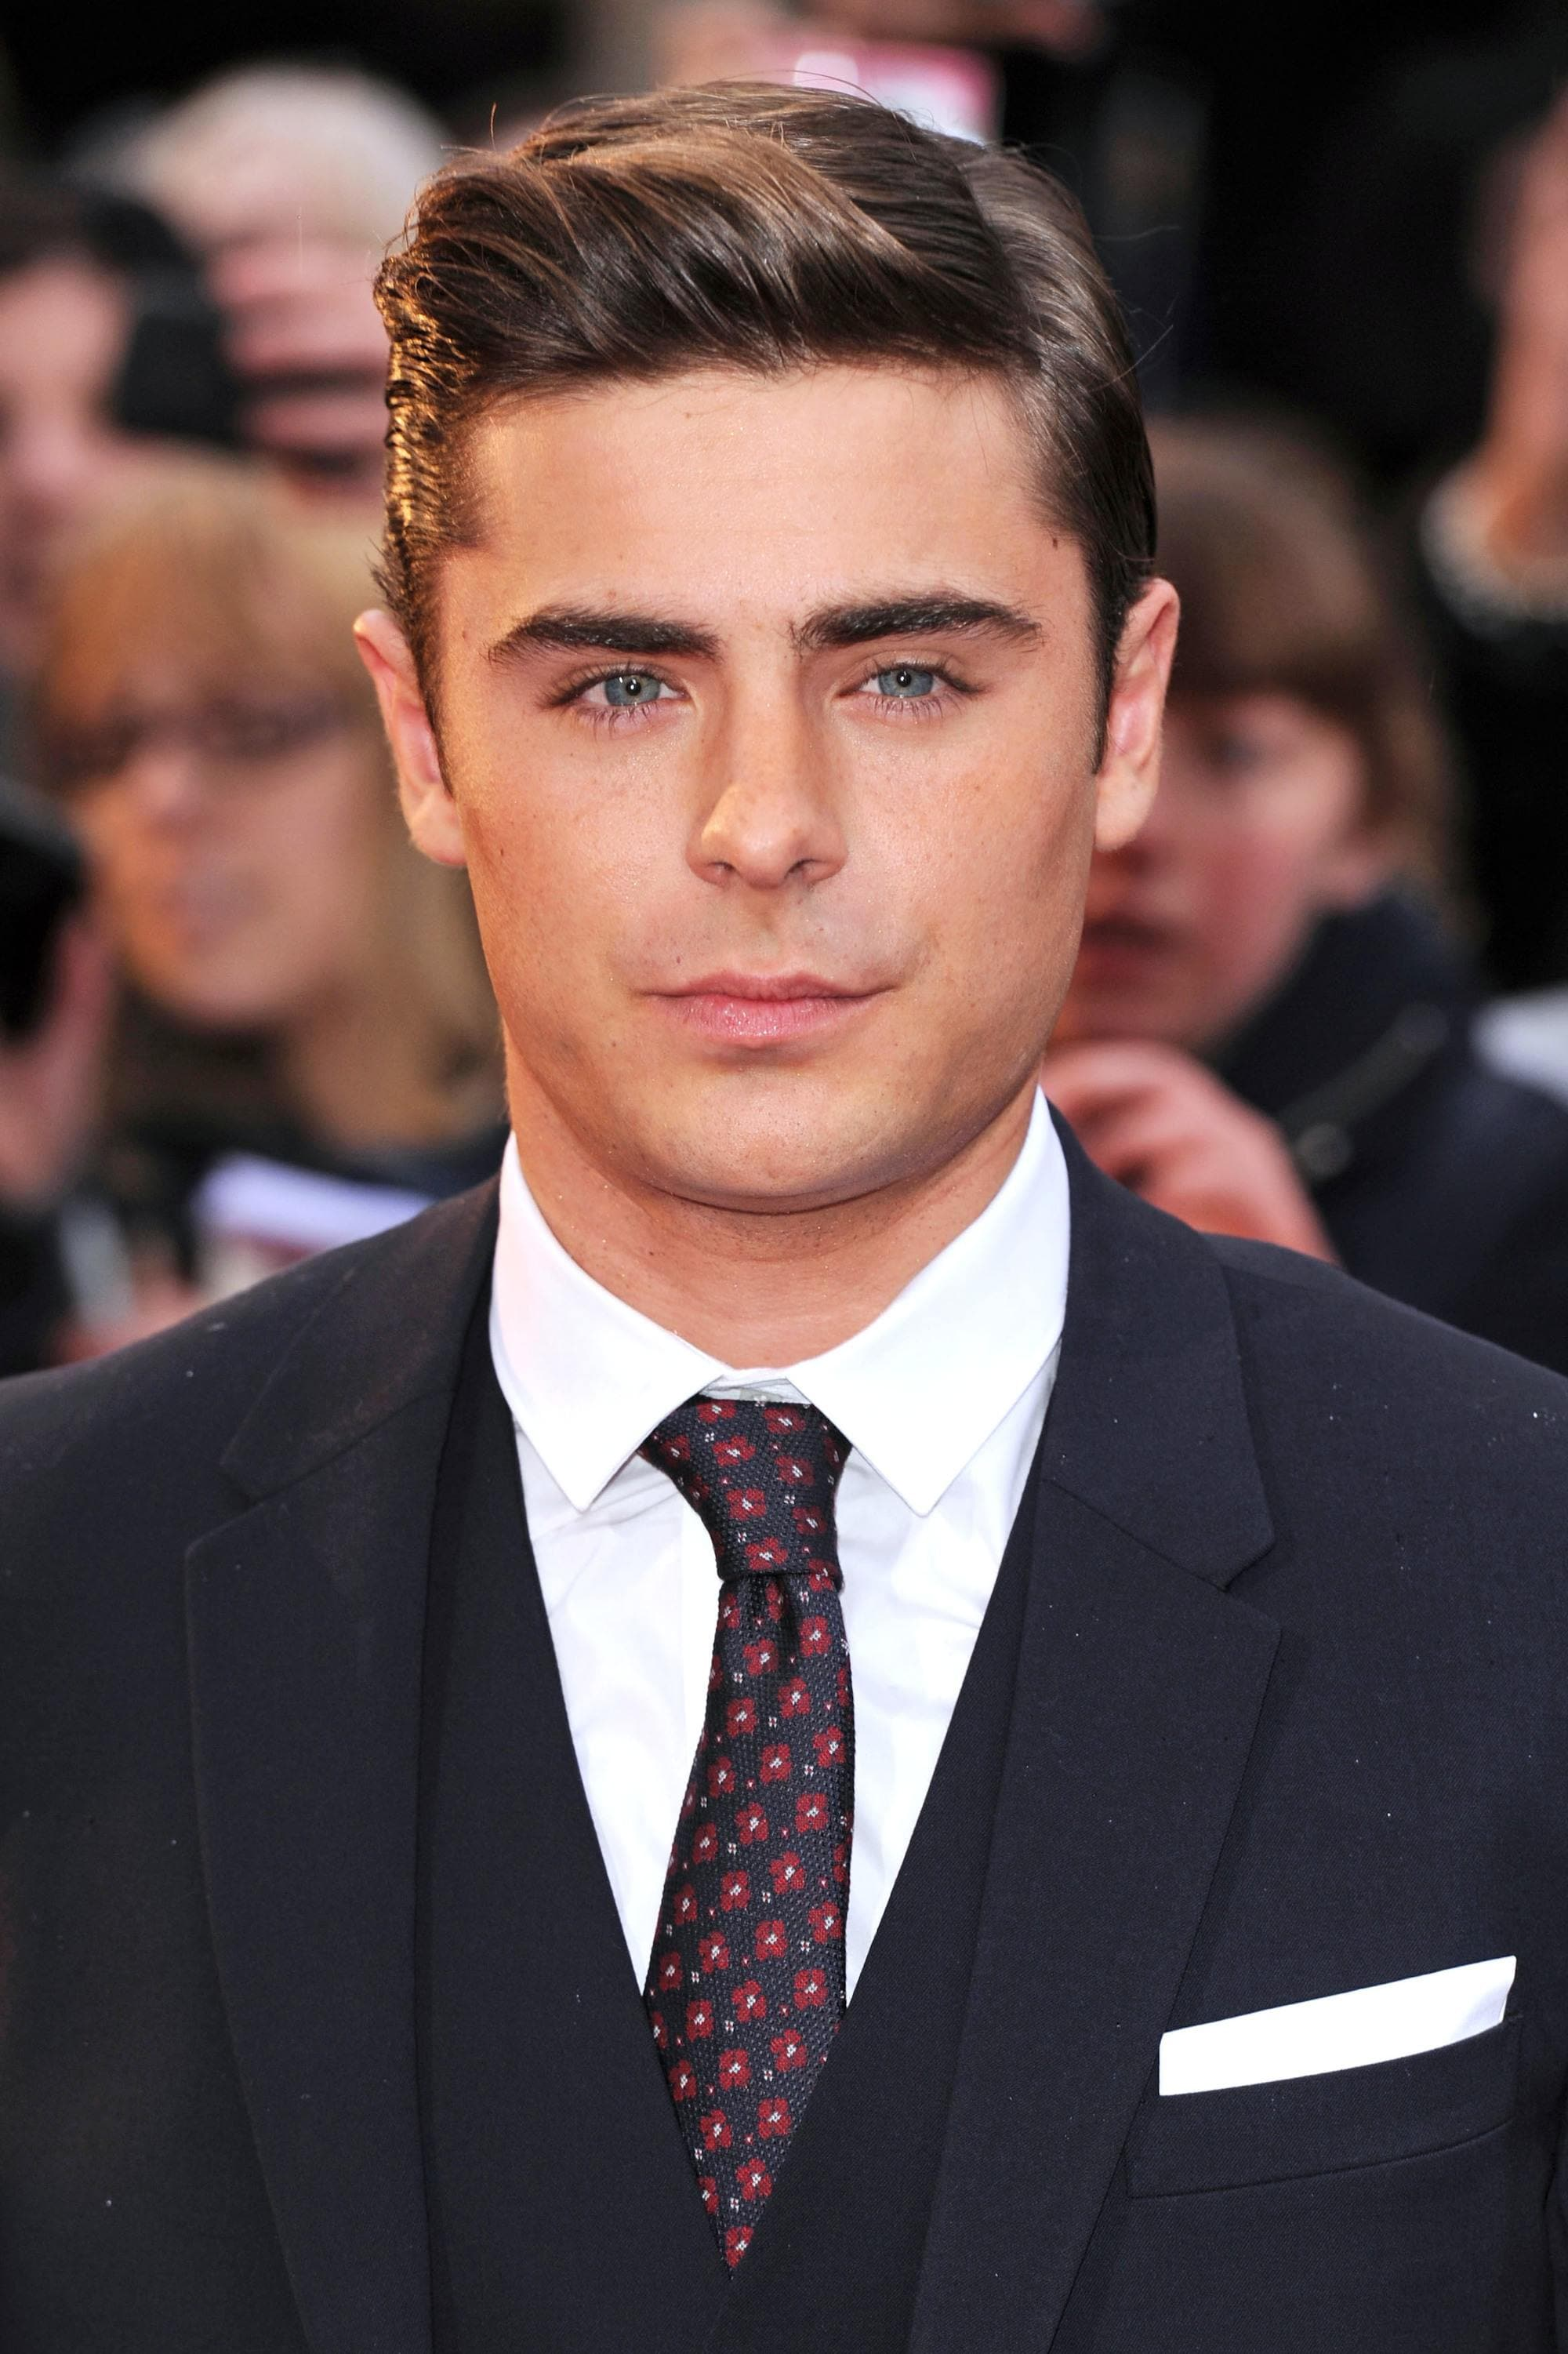 Ivy League haircut: Zac Efron with brown hair in a long Ivy League haircut, on the red carpet wearing a suit and tie